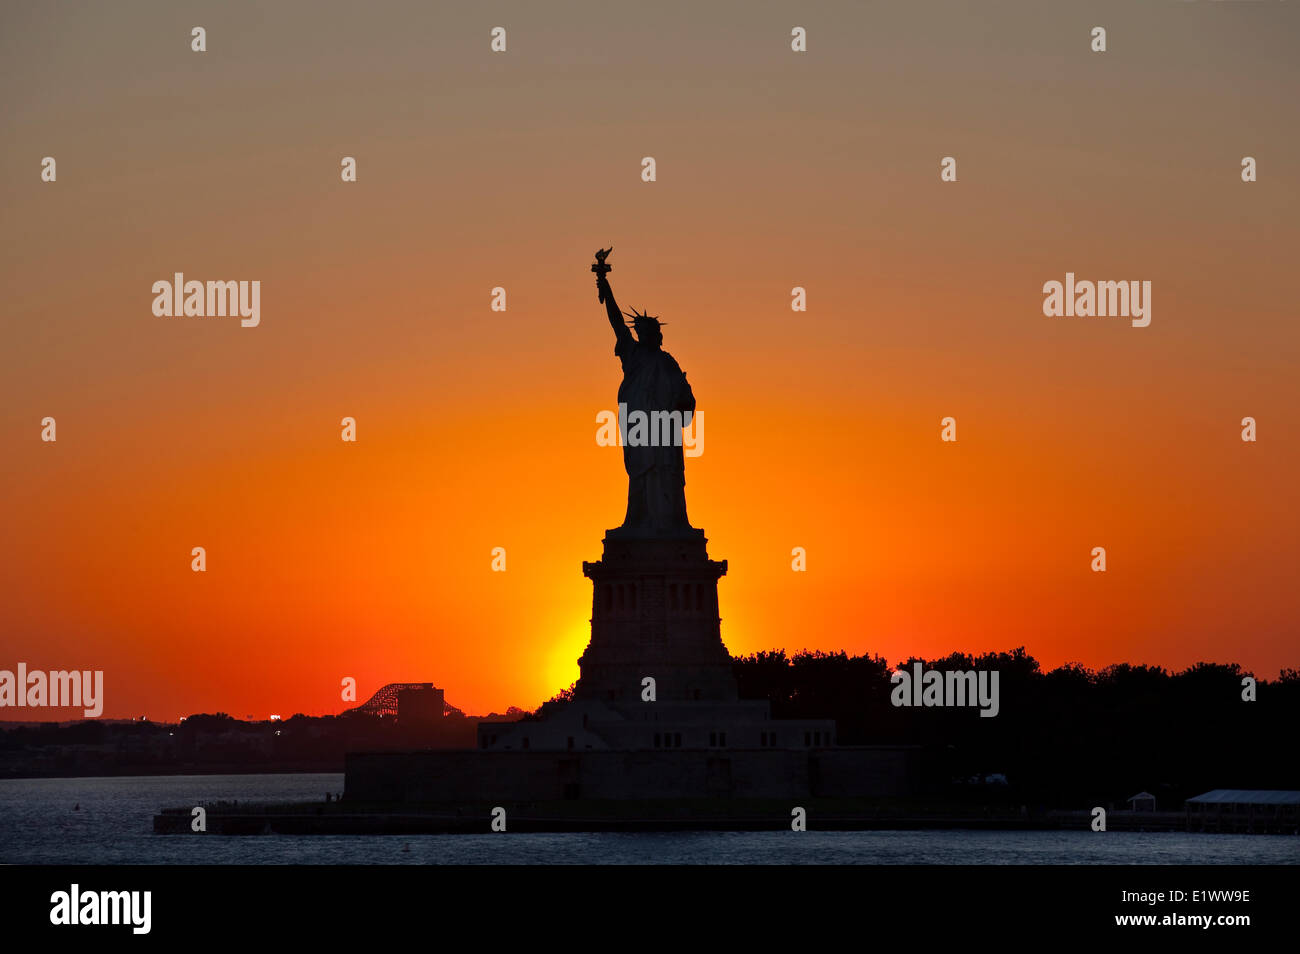 Silhouetted Statue of Liberty photographed against the setting sun. Liberty Island, New York, U.S.A. - Stock Image